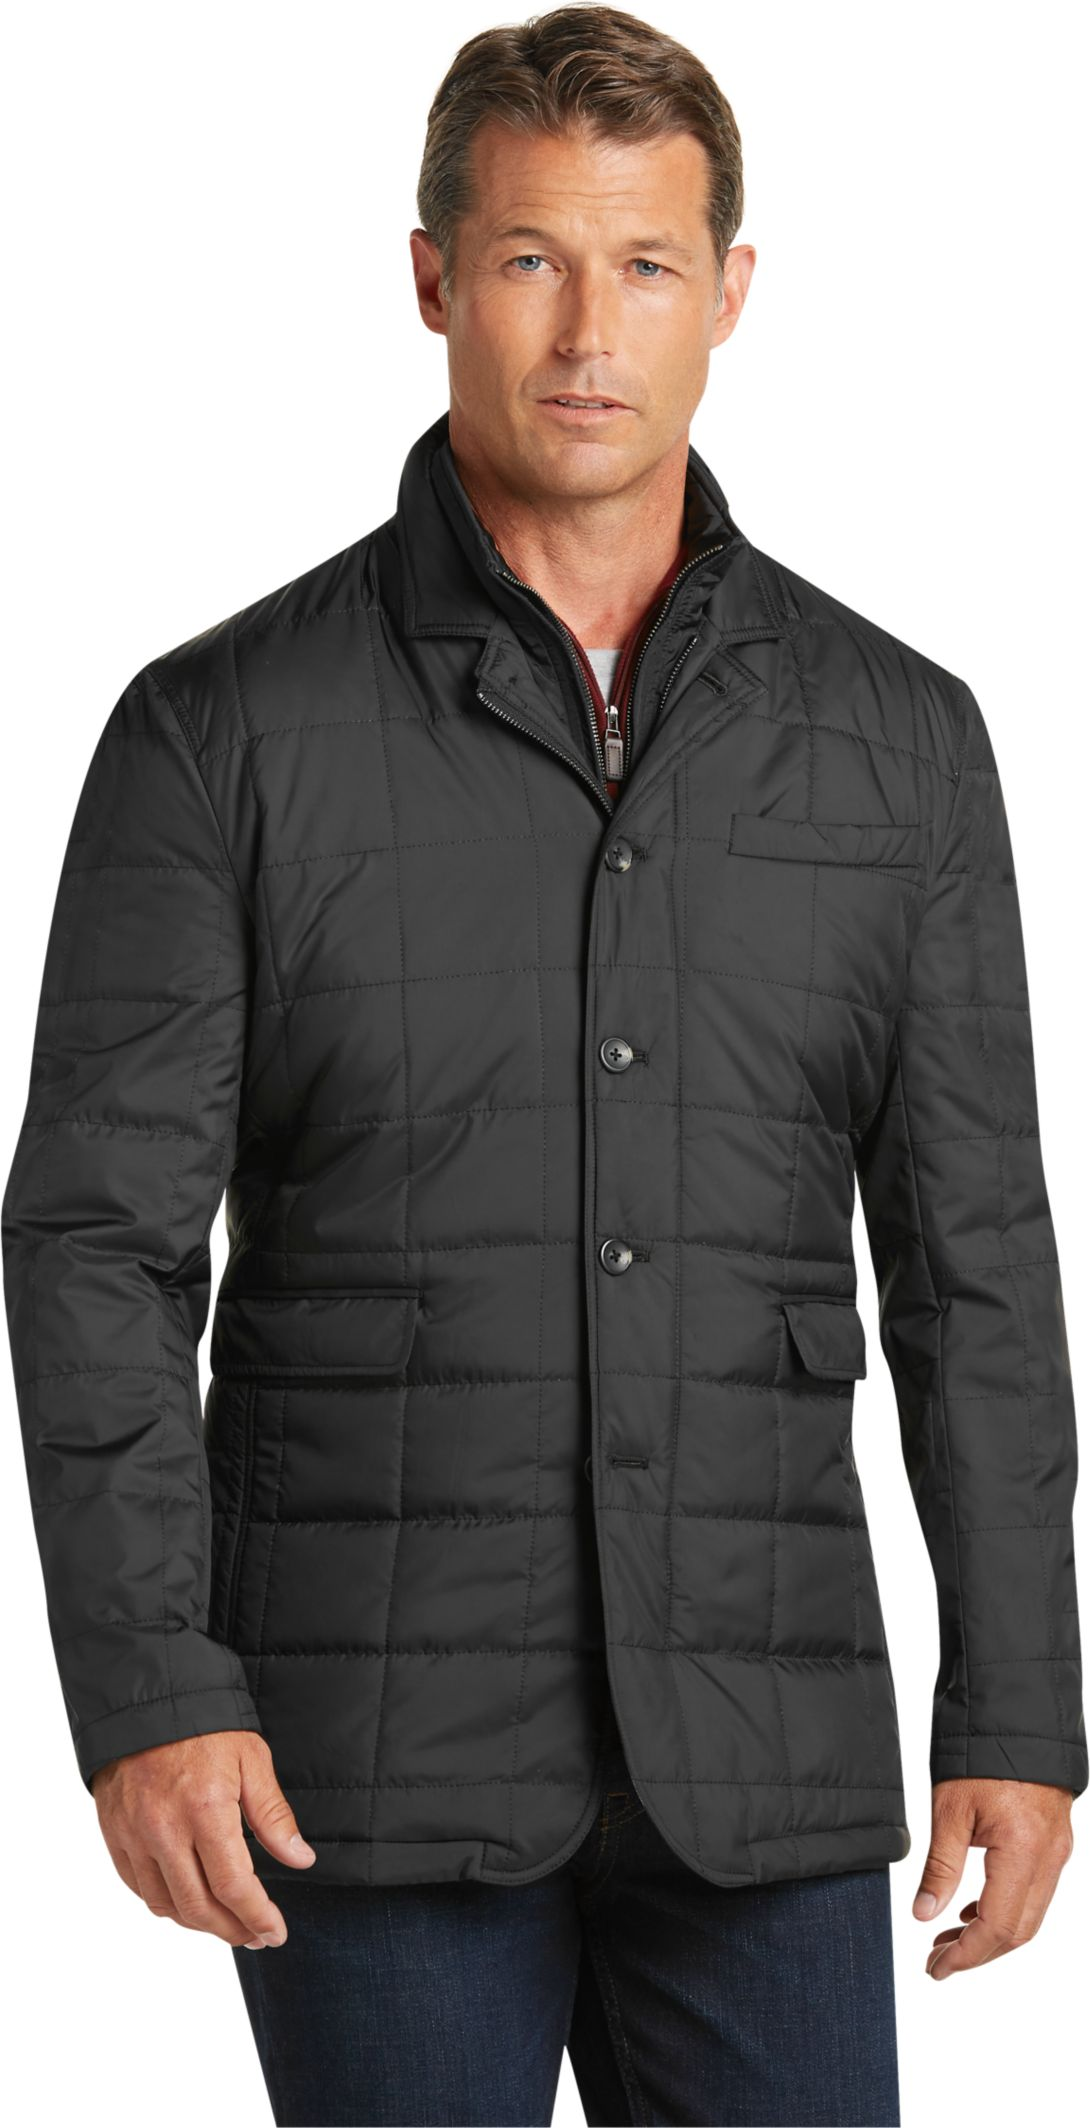 Quilted jacket mens fashion 74